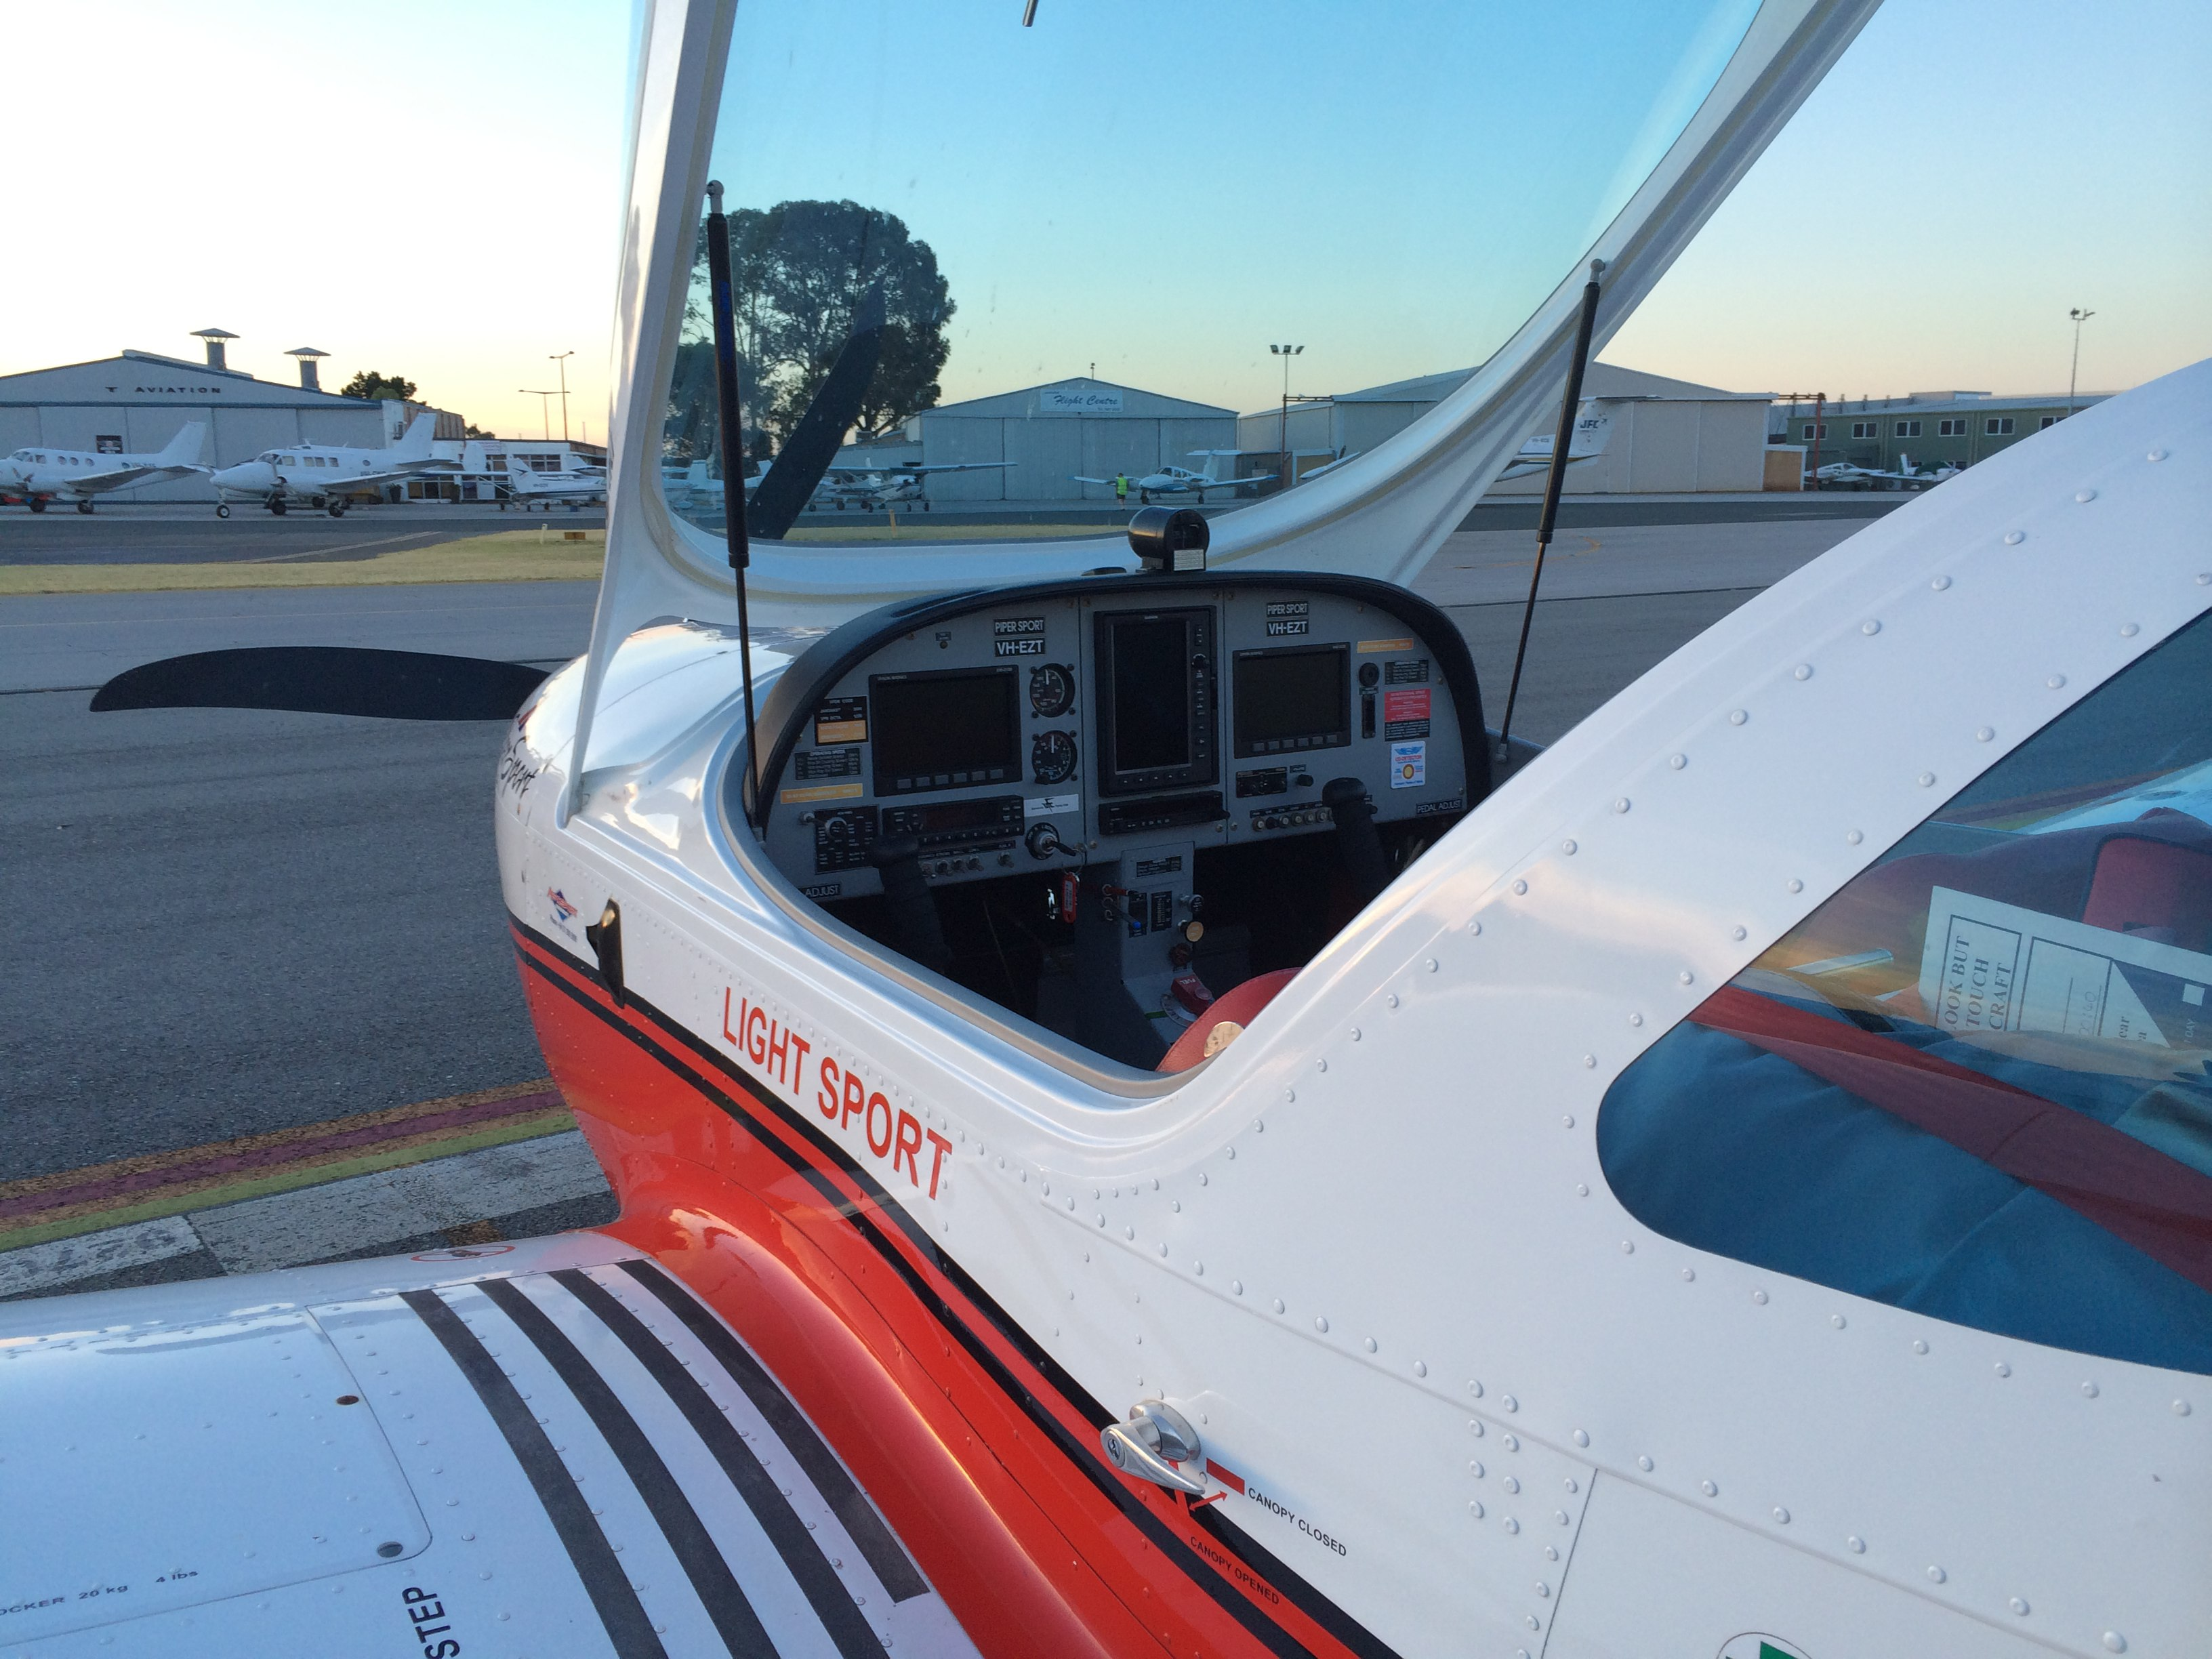 VH-EZT-cockpit-flight-training-jandakot-flying-club-learn-to-fly-trial-flight-scenic-flight-private-hire-aircraft